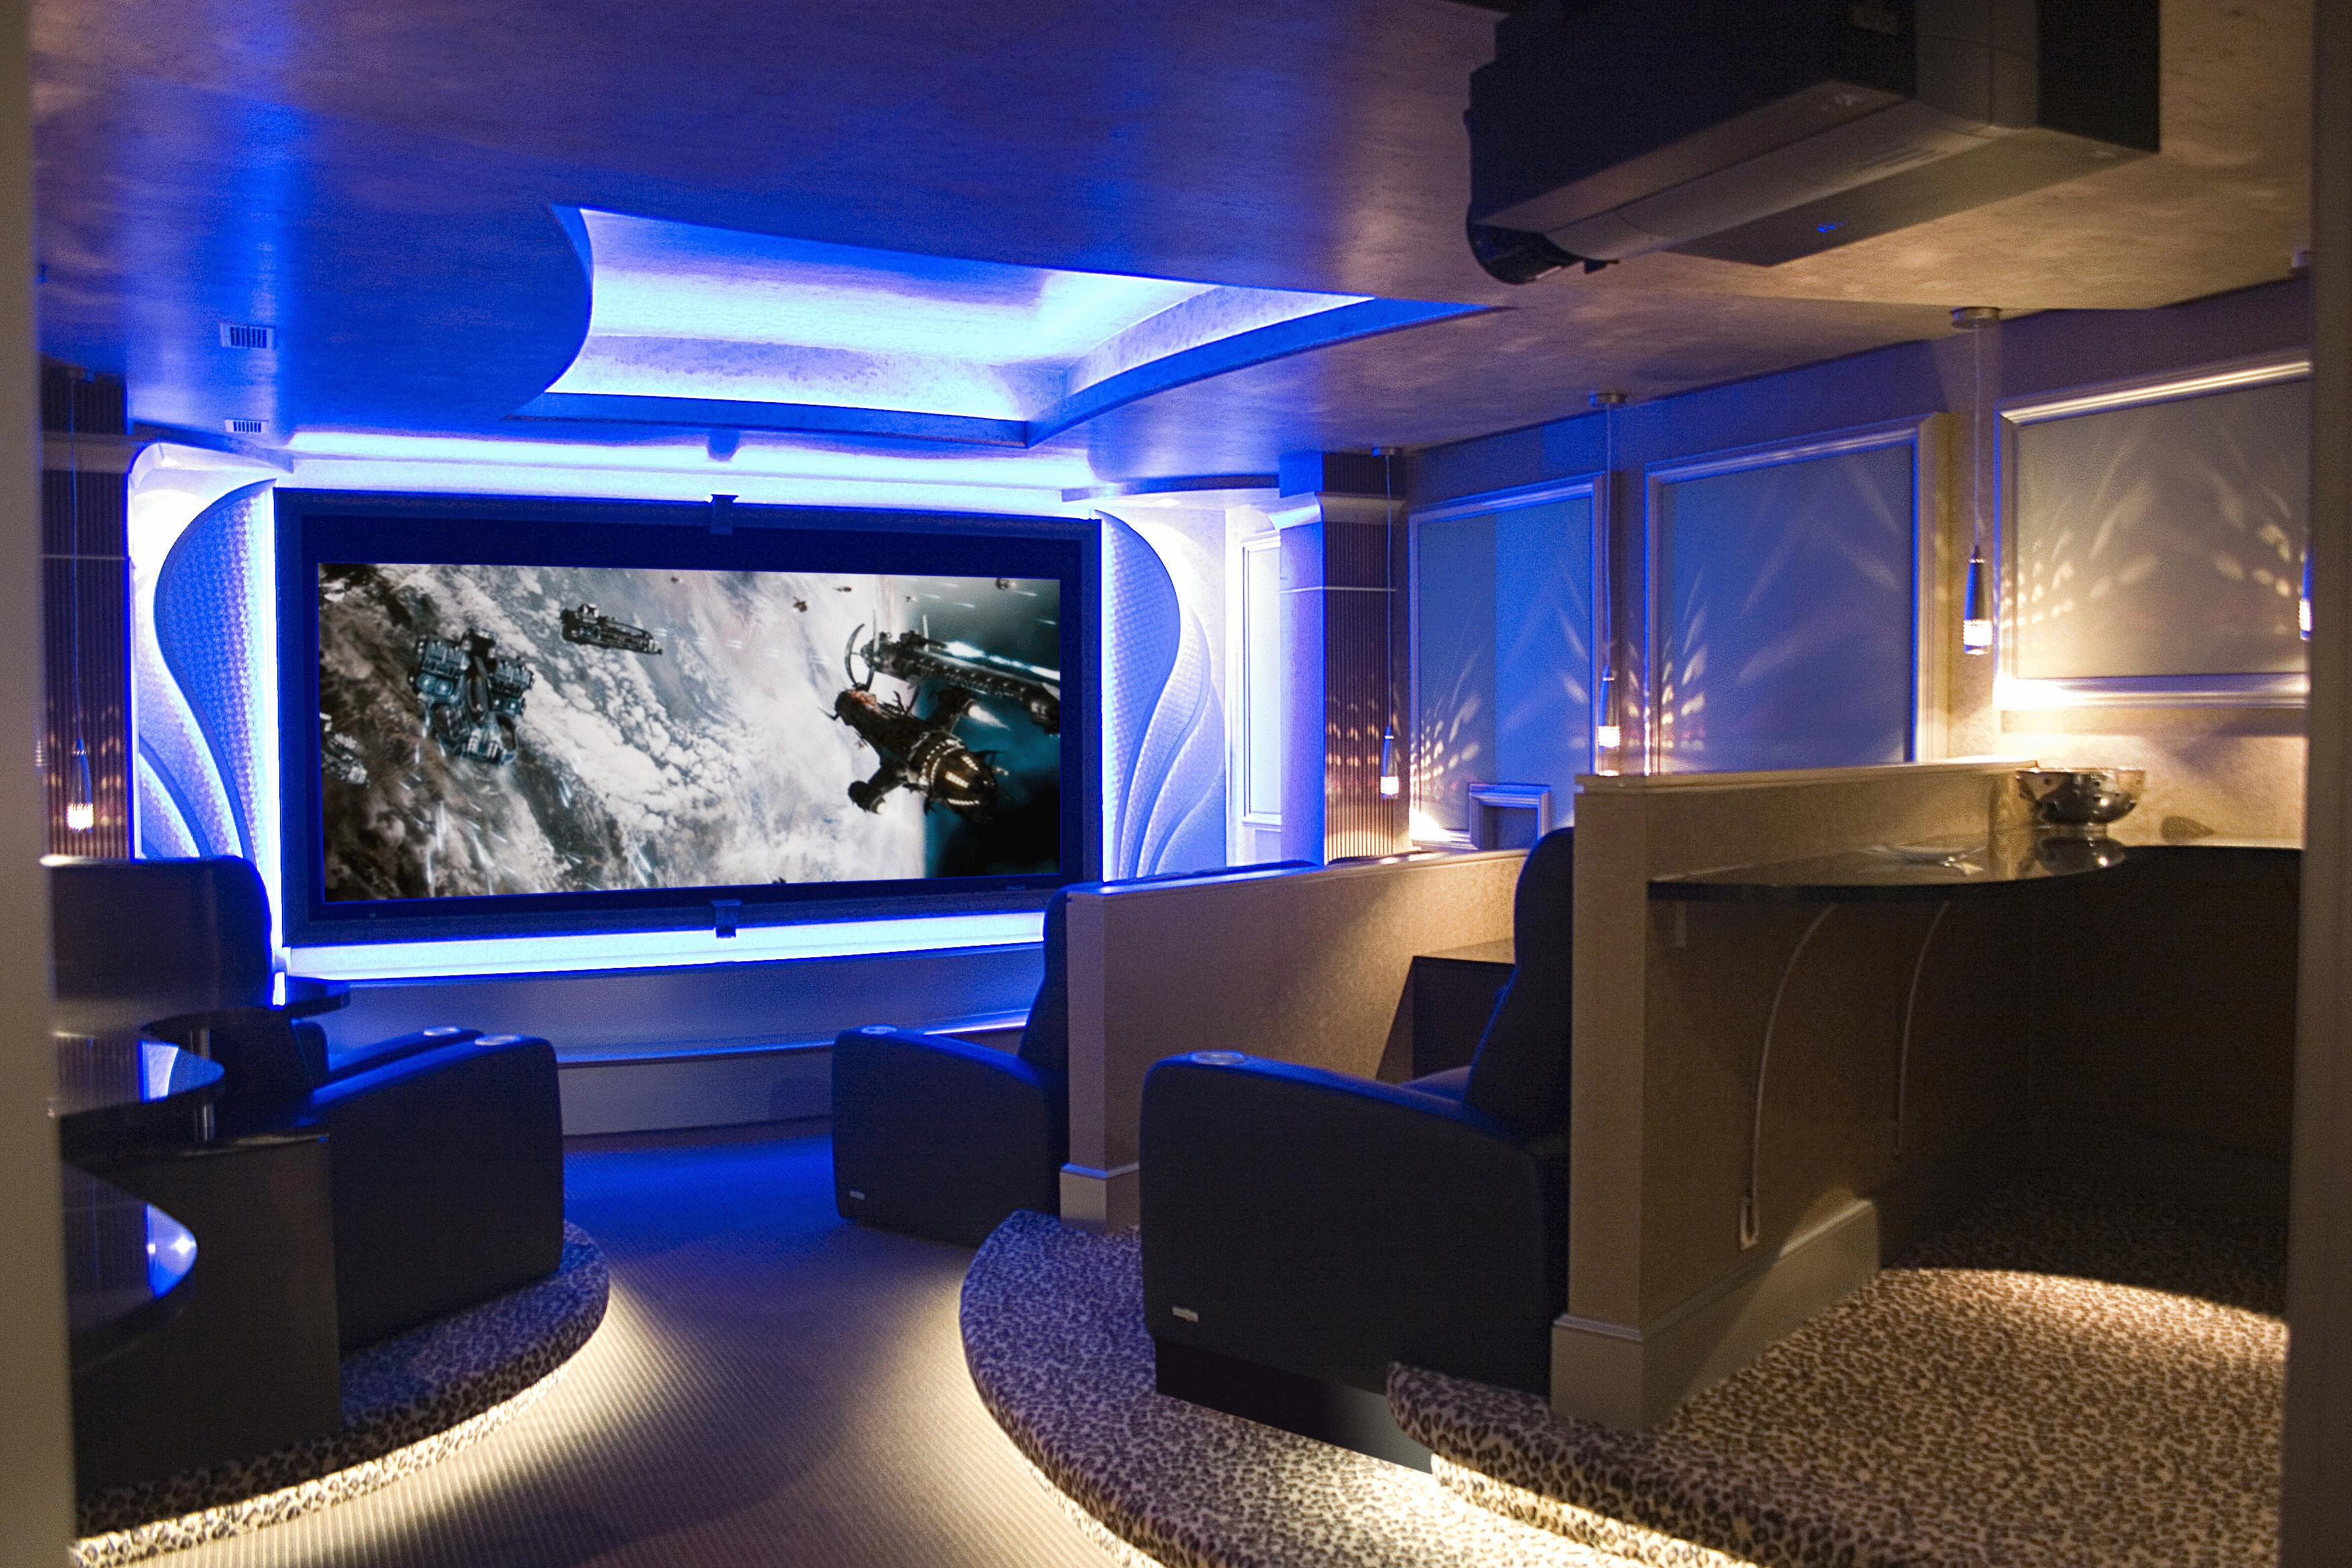 Advancements In Home Theater Audio Birmingham Whole House Audio Video Systems